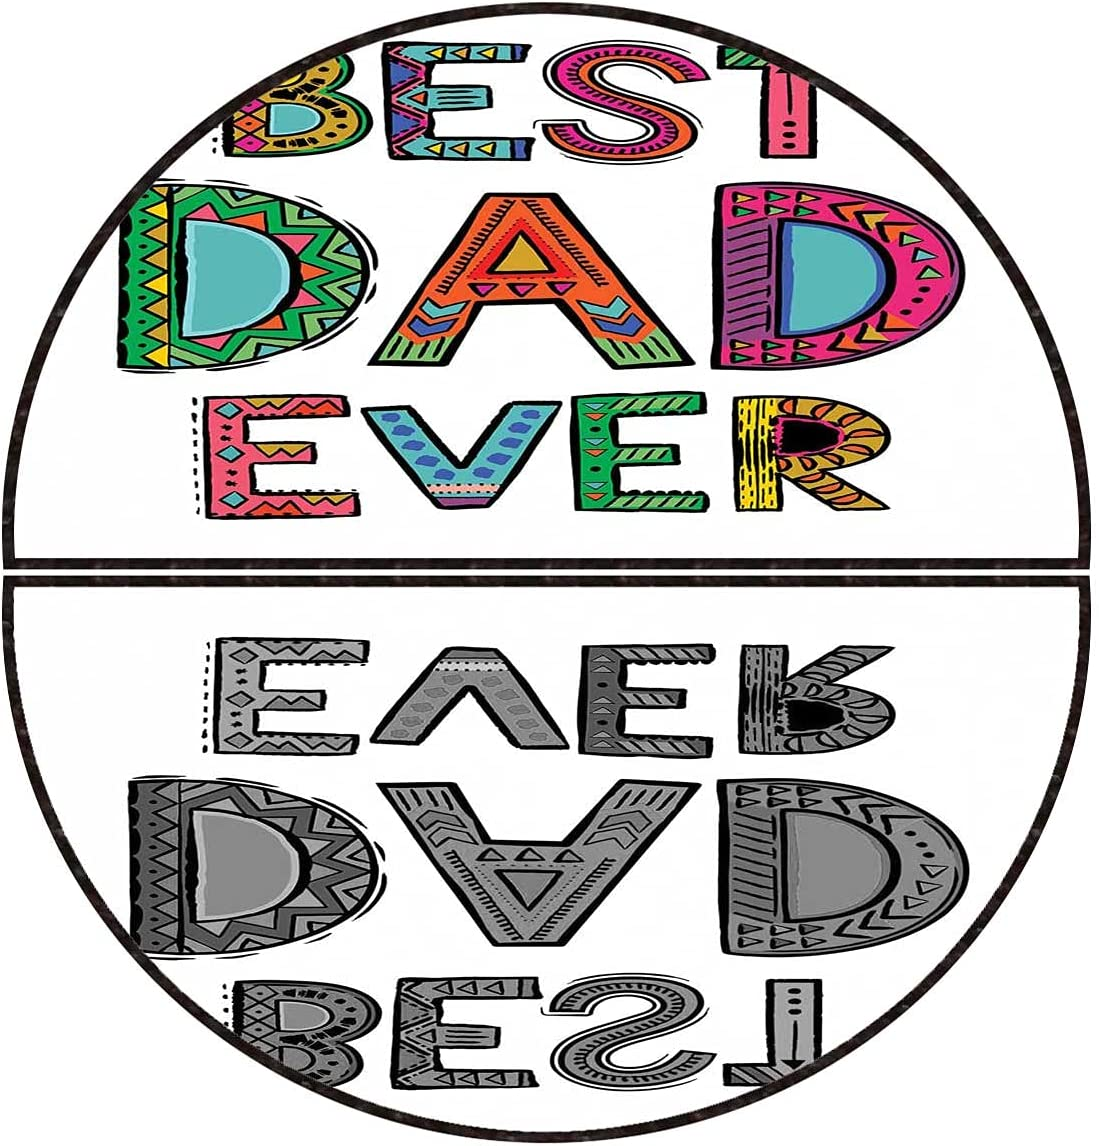 Half Round Doormat Fathers Day New life Best Id Mat Entryway Set 5 popular Ever Dad